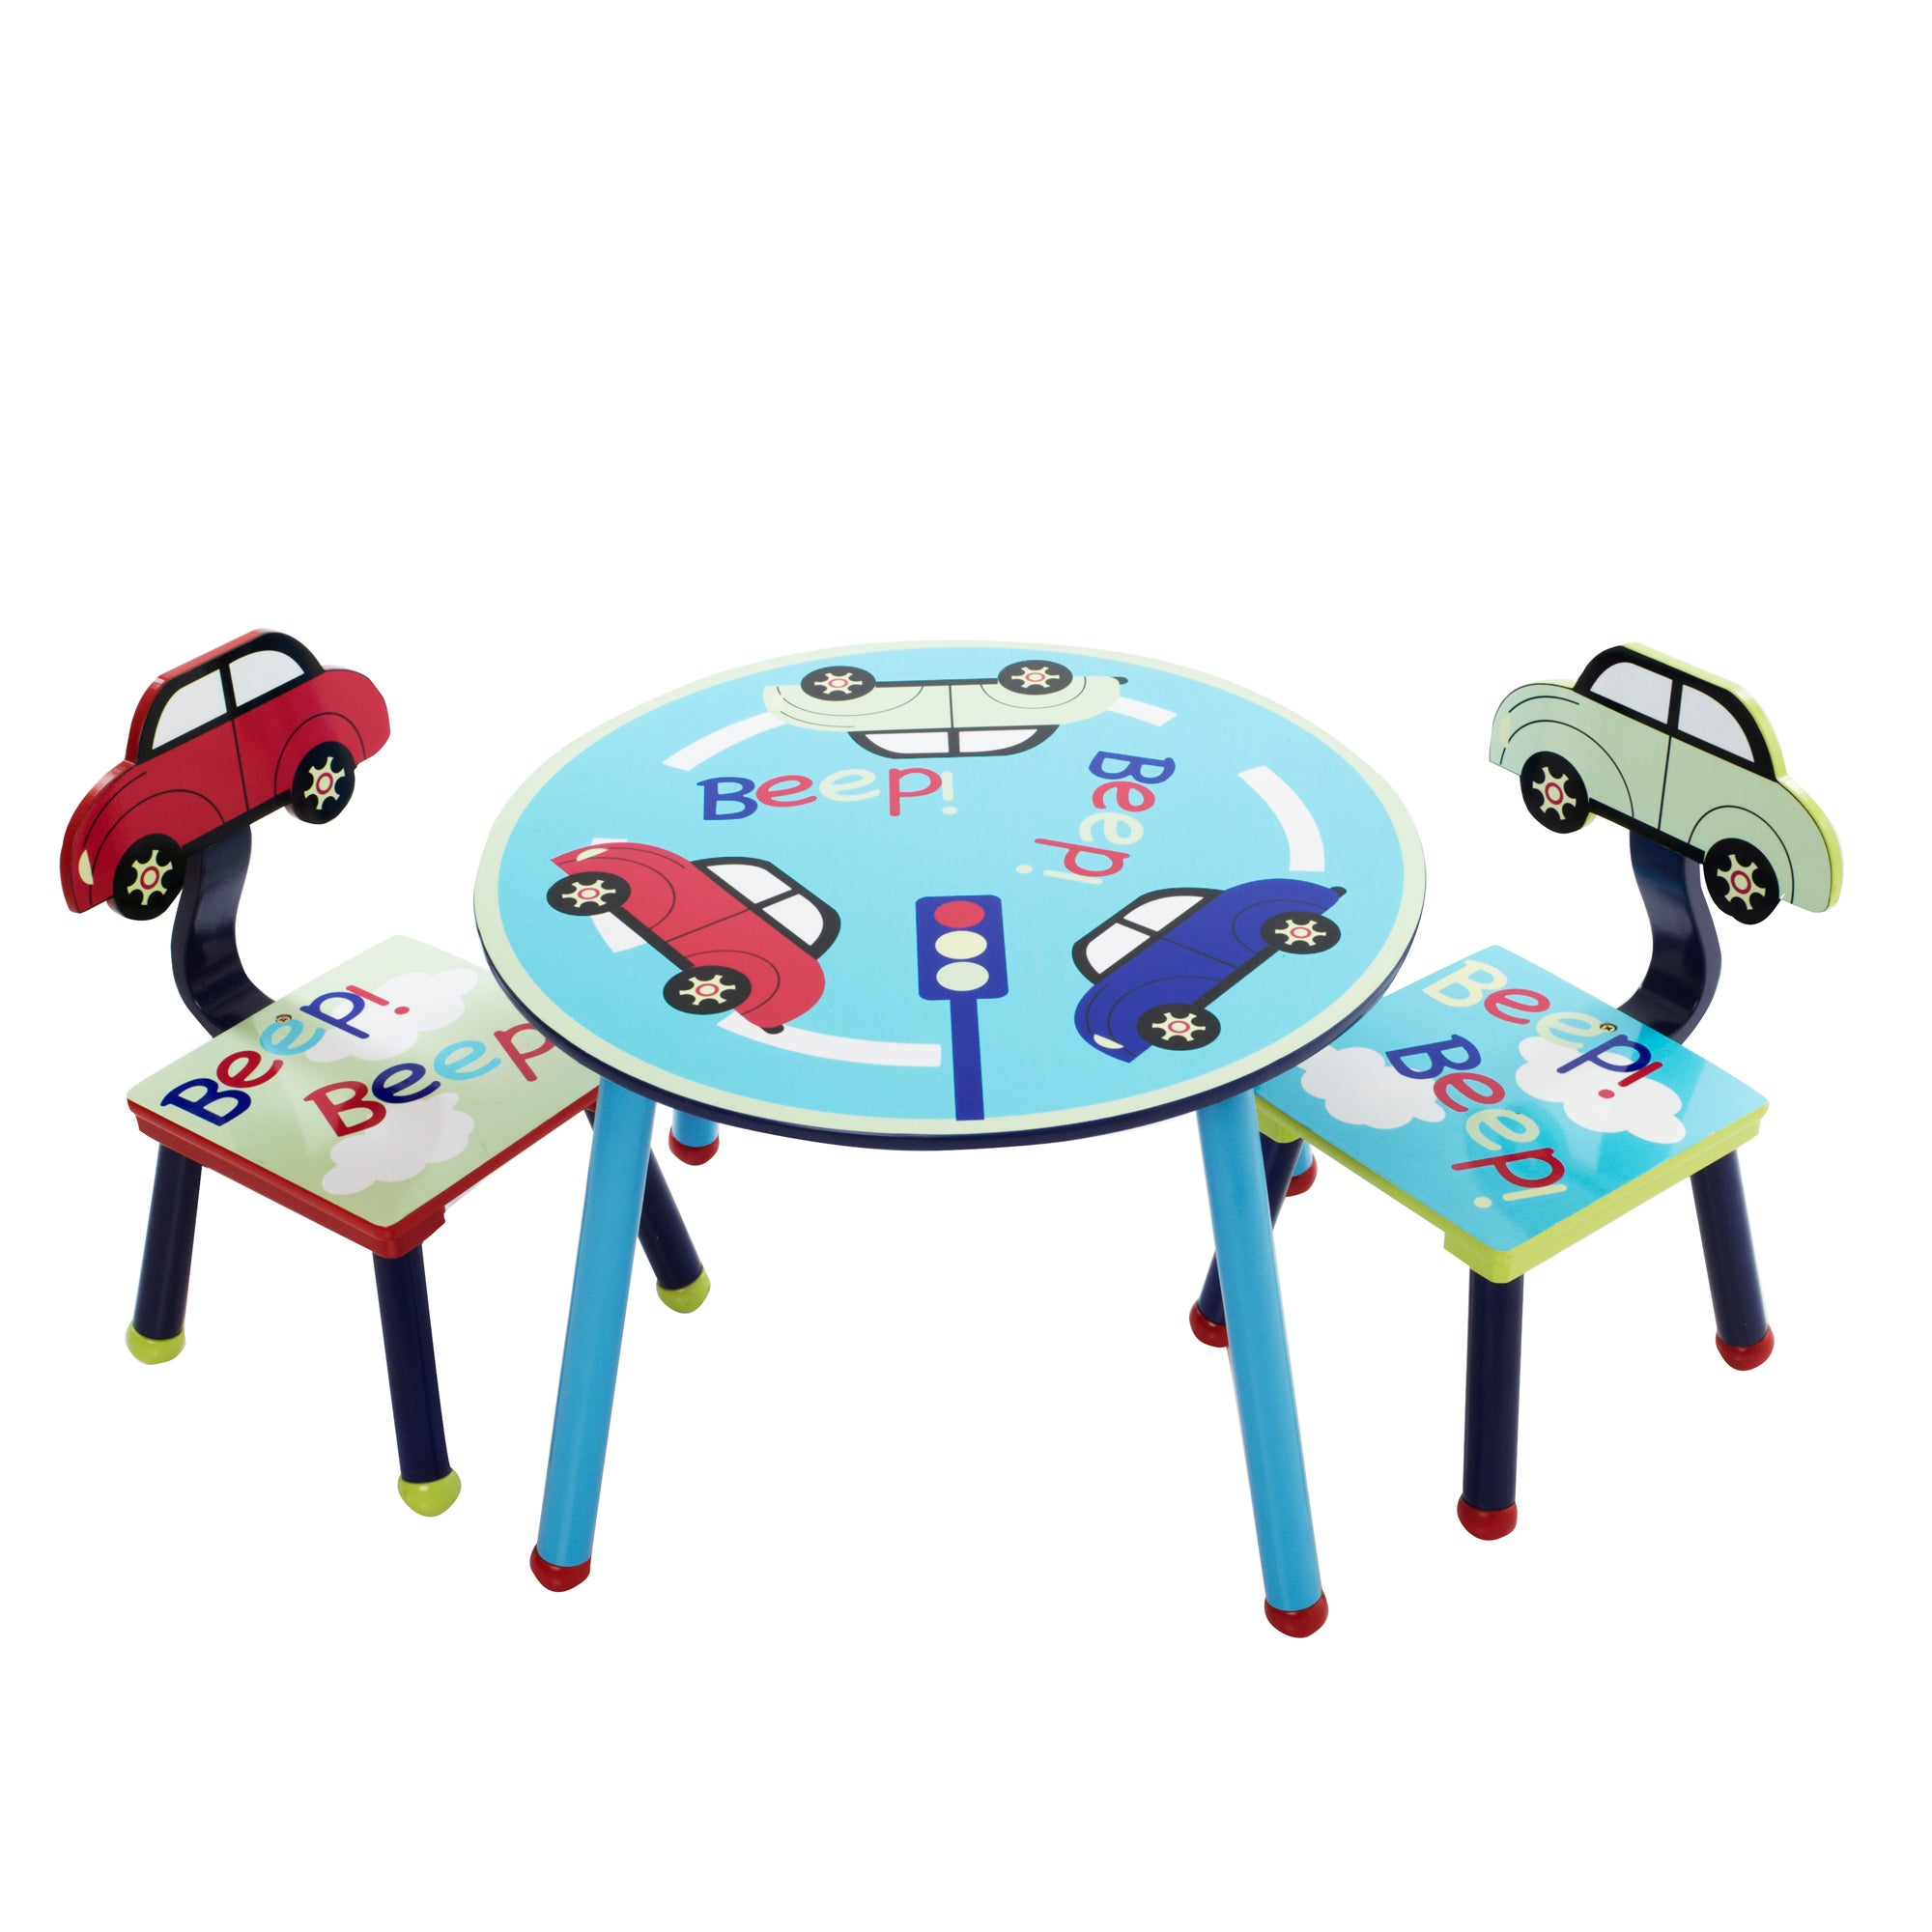 Kids Beep Beep Collection Play Table and Chairs